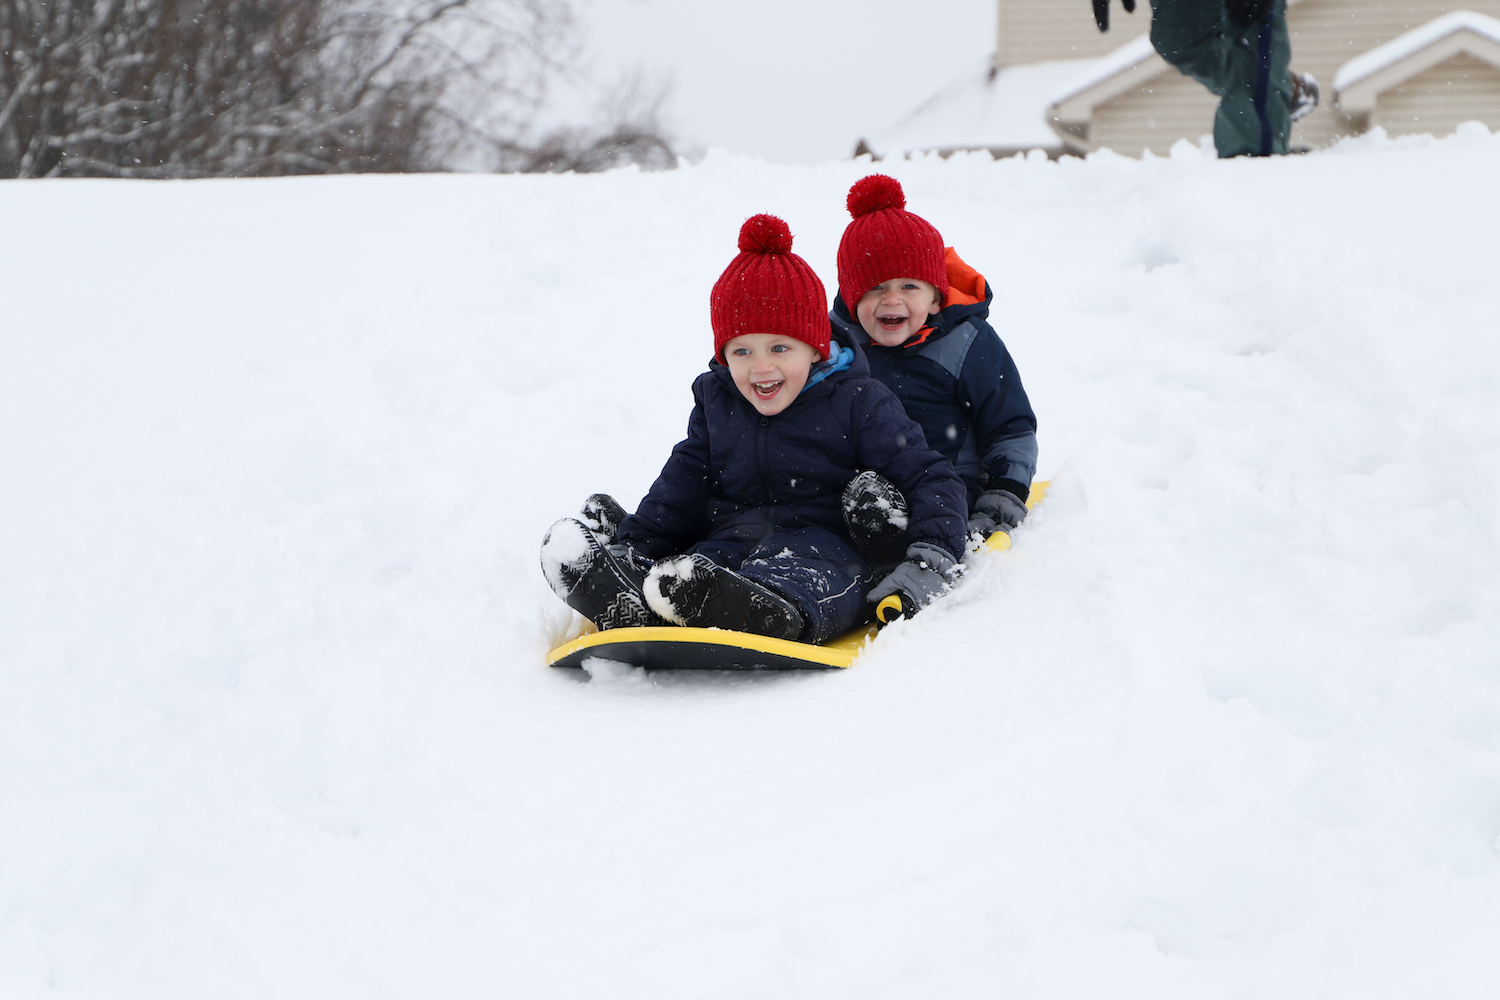 Cold Weather Tips For Your Home and How Hoffmann Brothers can help! Servicing the St. Louis, MO area - from Liz of lizrotz.com